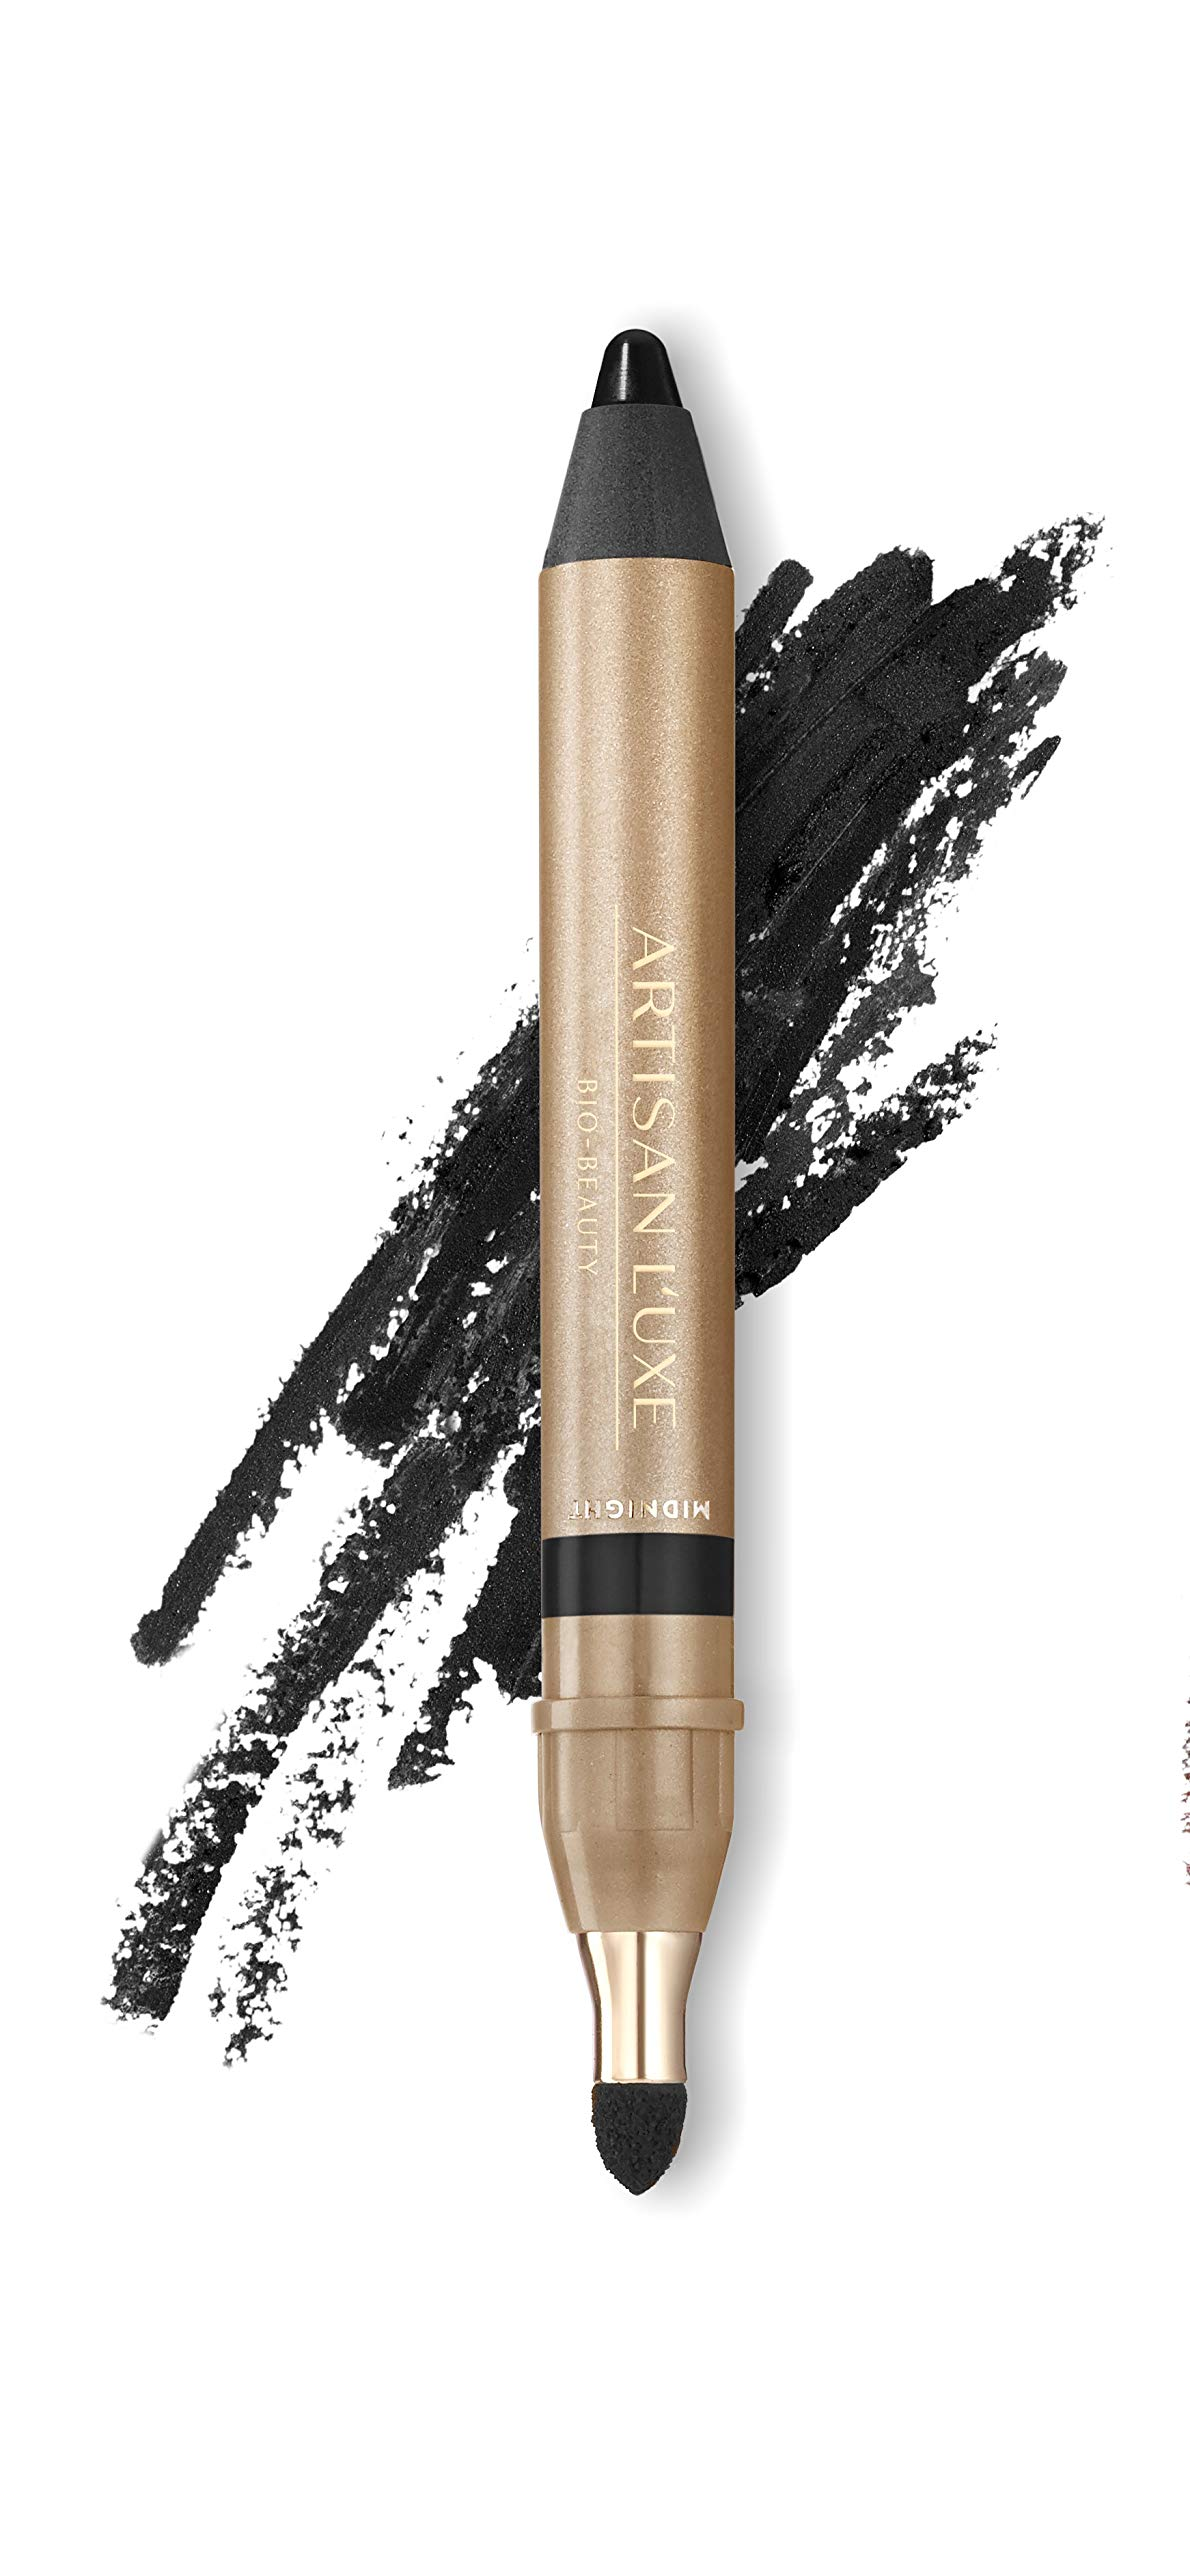 Velvet Eyeliner Pencil by Artisan L'uxe Beauty | Jumbo Eye Pencil for Smokey Eye | Water-Resistant & Smudge Proof | Long-Lasting | Sue Devitt | Black | Midnight